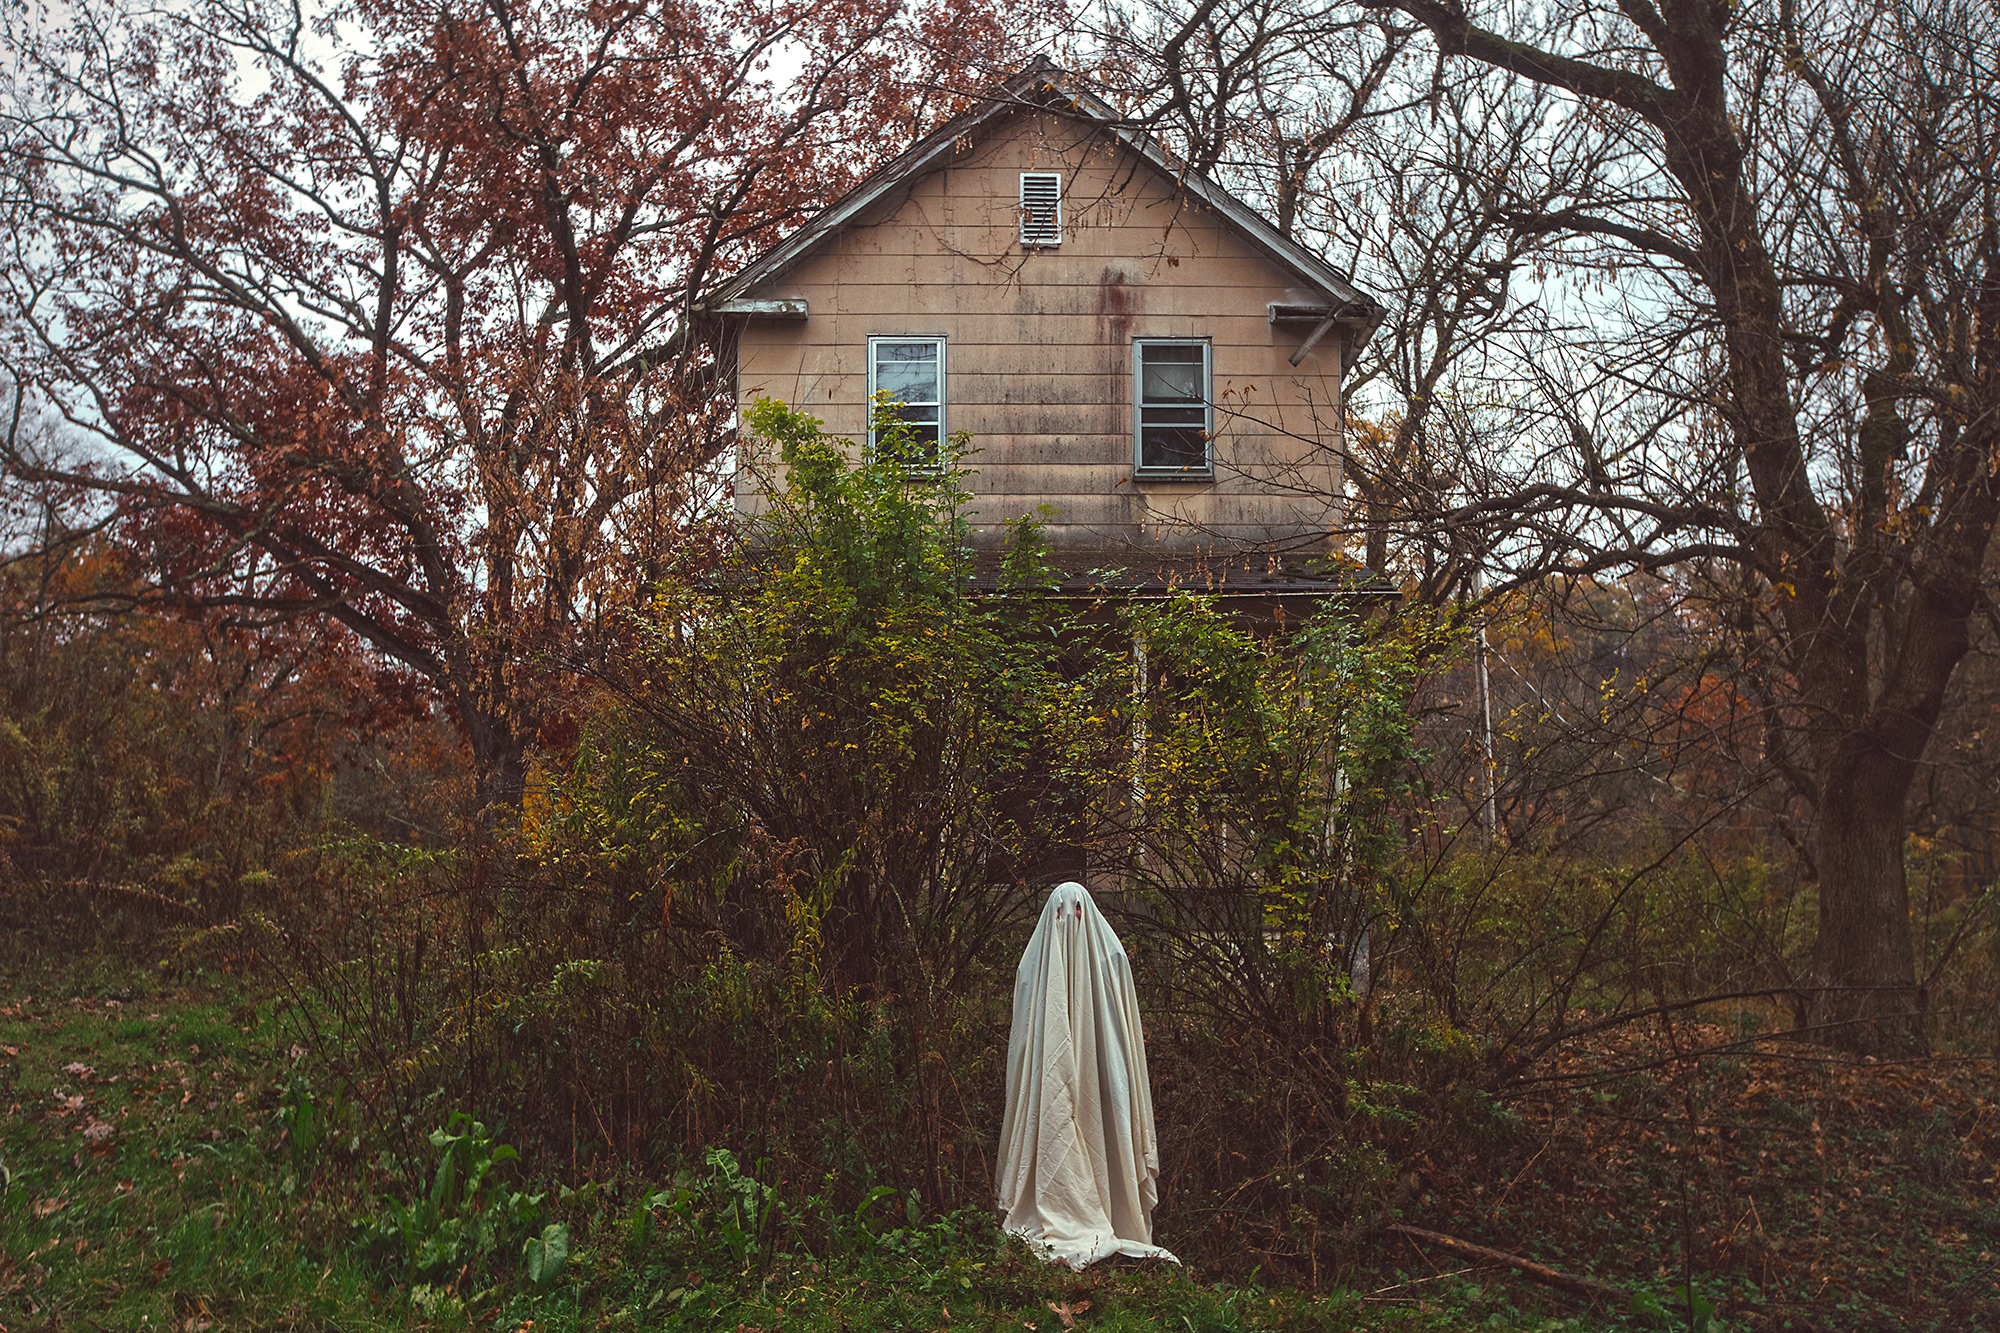 Ghosts Linger Around Abandoned Homes in Haunting Photographs by Karen Jerzyk